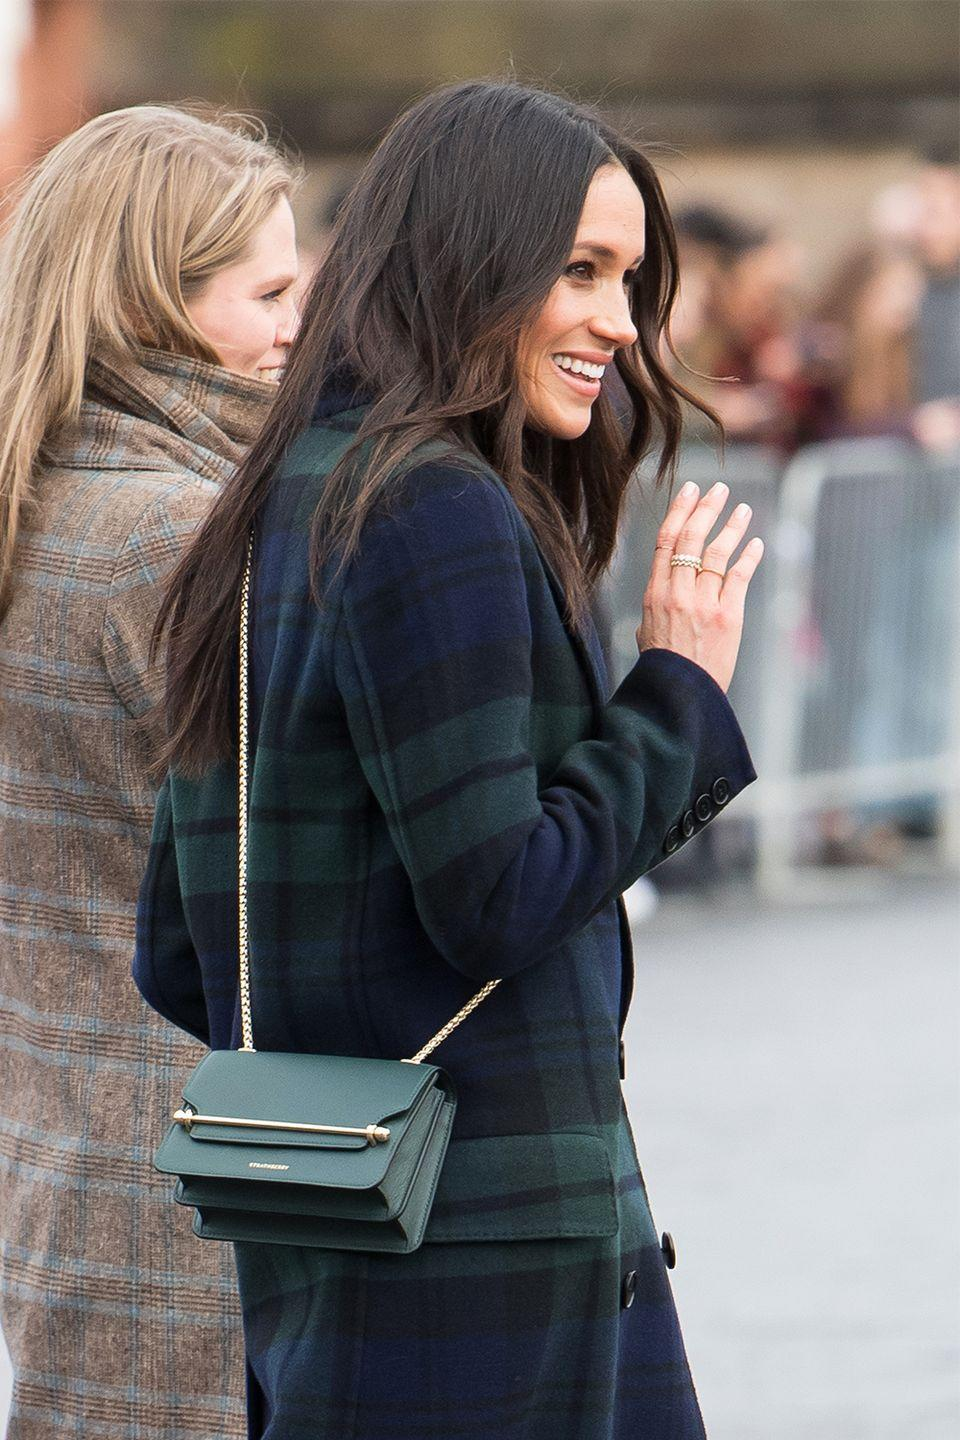 """<p>It's no coincidence that Kate Middleton wears clutches during <em>all</em> of her public outings—<a href=""""https://www.marieclaire.com/celebrity/a17809126/meghan-markle-crossbody-bag-royal-protocol/"""" rel=""""nofollow noopener"""" target=""""_blank"""" data-ylk=""""slk:according to royal expert William Hanson"""" class=""""link rapid-noclick-resp"""">according to royal expert William Hanson</a>, royals opt for clutches over cross-body bags as a sneaky method to avoid shaking hands with fans. On her visit to Edinburgh in February, Meghan made the mistake of choosing a far too practical bag. </p>"""